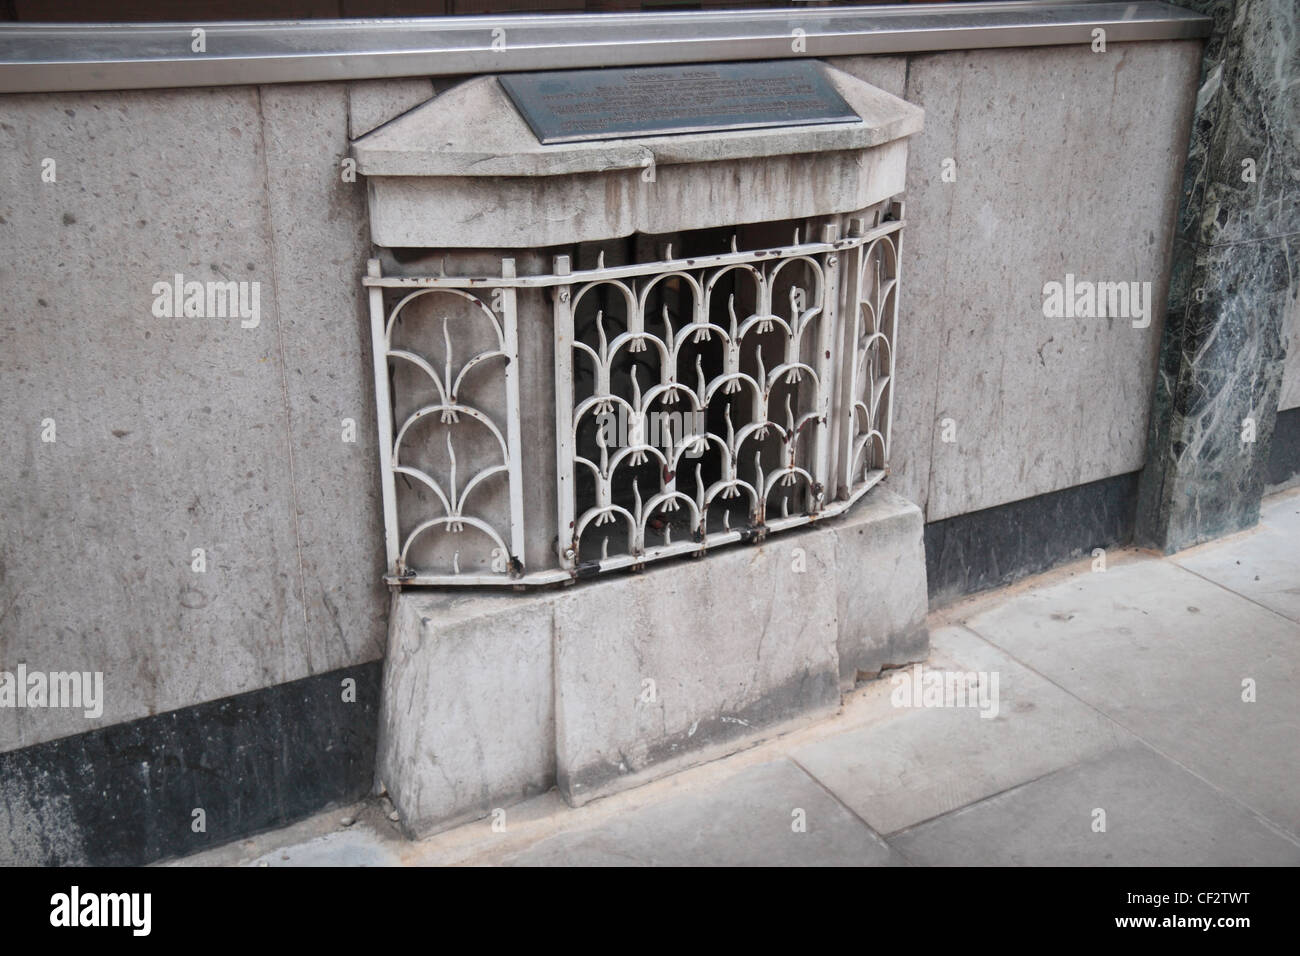 The London Stone, a historic stone hidden behind this iron grille on Cannon Street, London, UK. - Stock Image